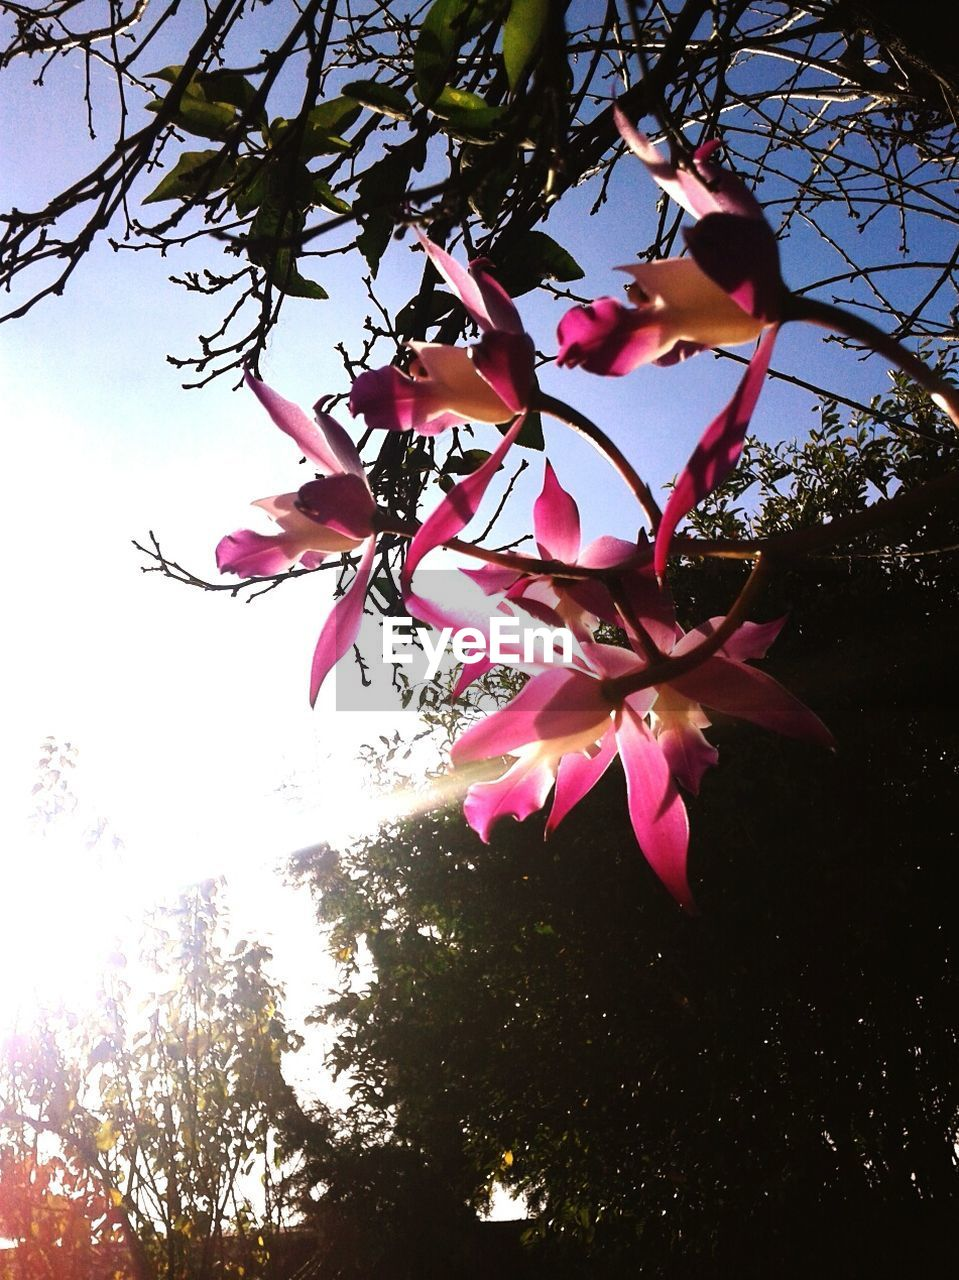 flower, tree, beauty in nature, growth, low angle view, nature, petal, fragility, branch, pink color, magnolia, no people, blossom, freshness, day, outdoors, blooming, springtime, flower head, leaf, close-up, sky, bougainvillea